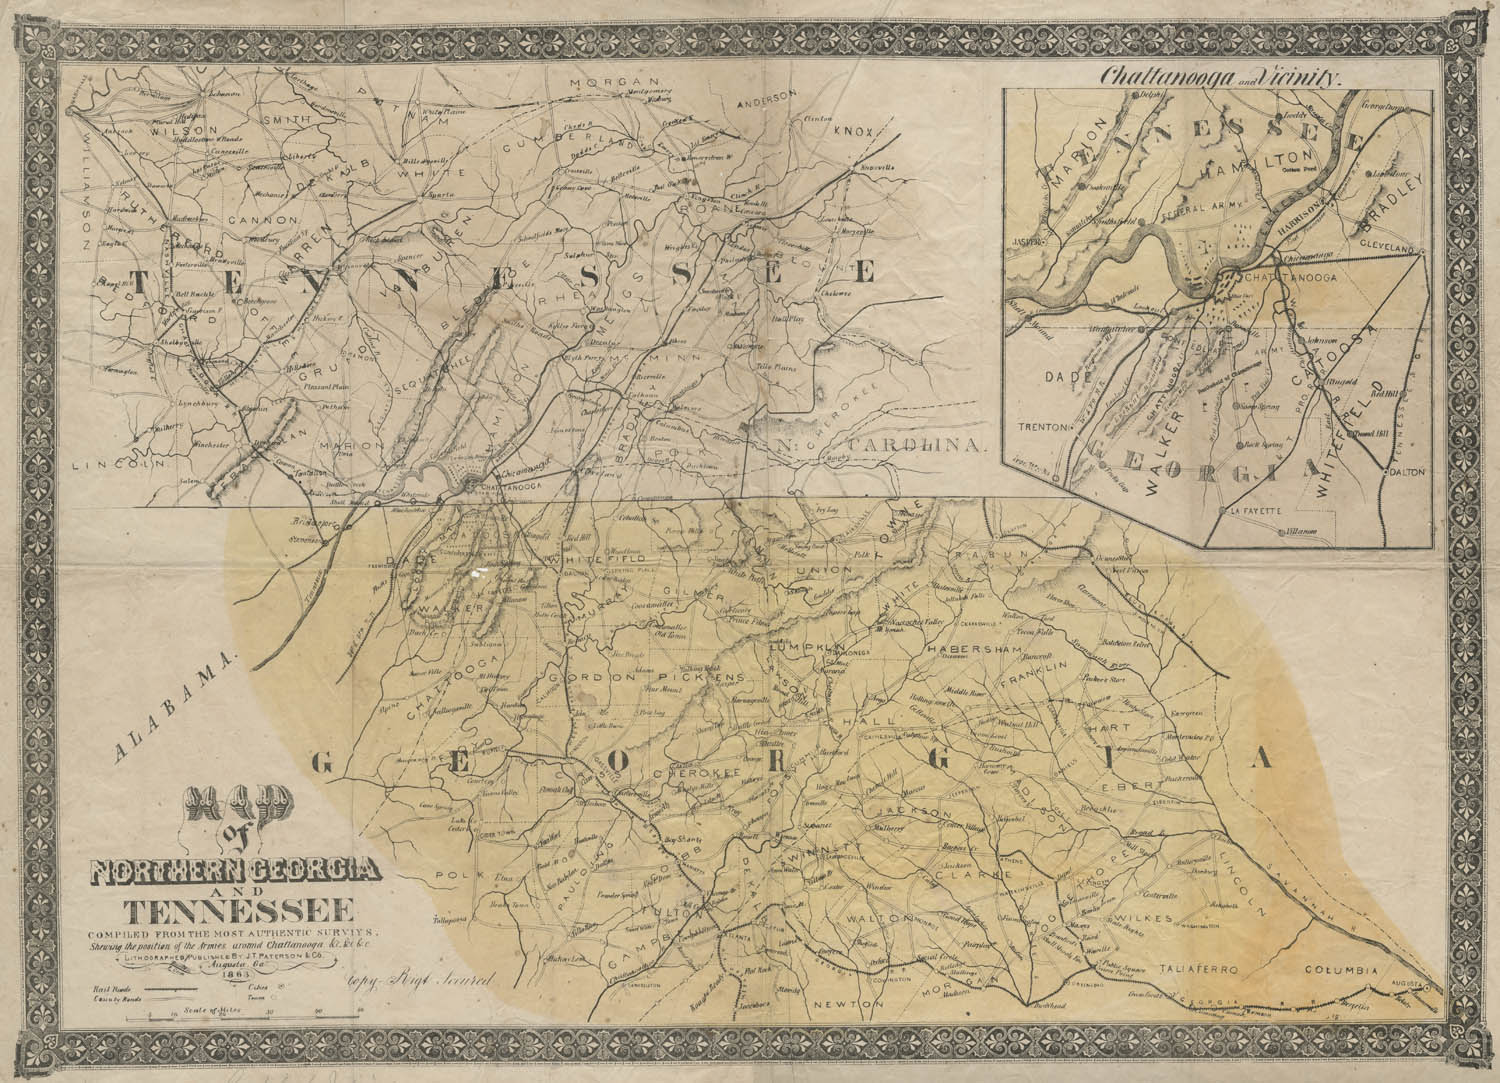 Map Of Northern Georgia And Tennessee  Shades Of Gray And